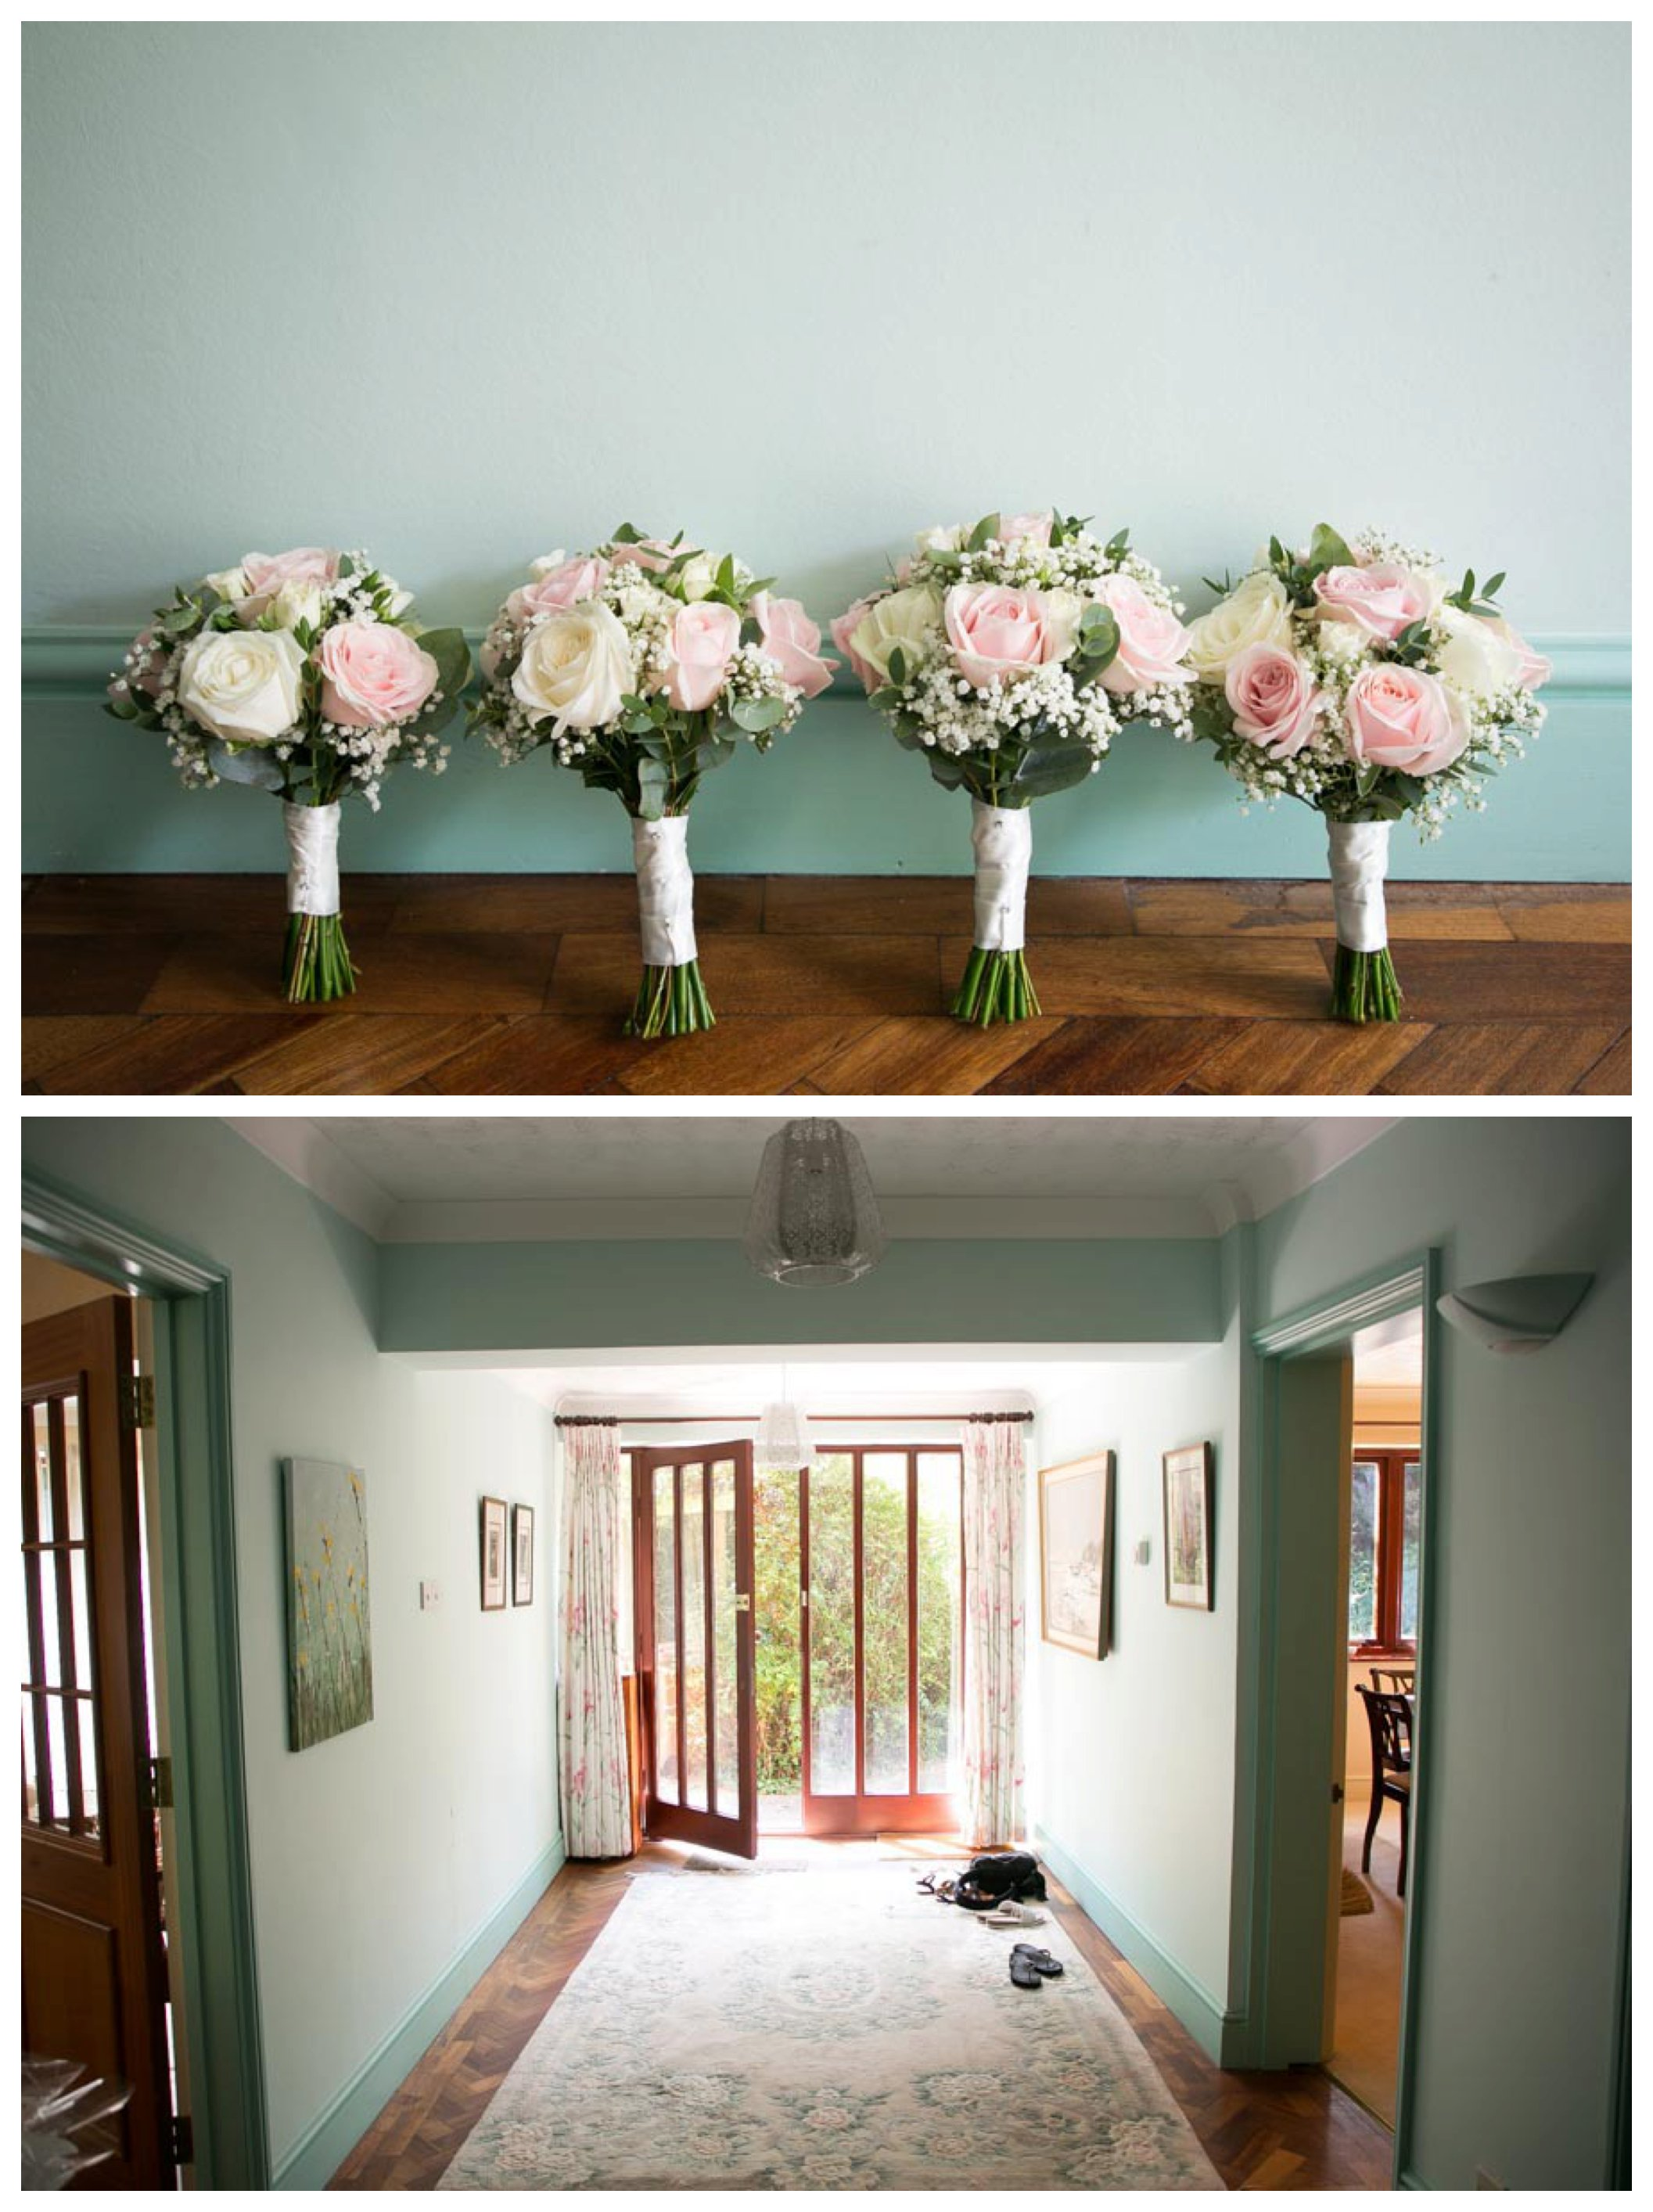 4 bouquets lined up at wall, doorway of family home before wedding